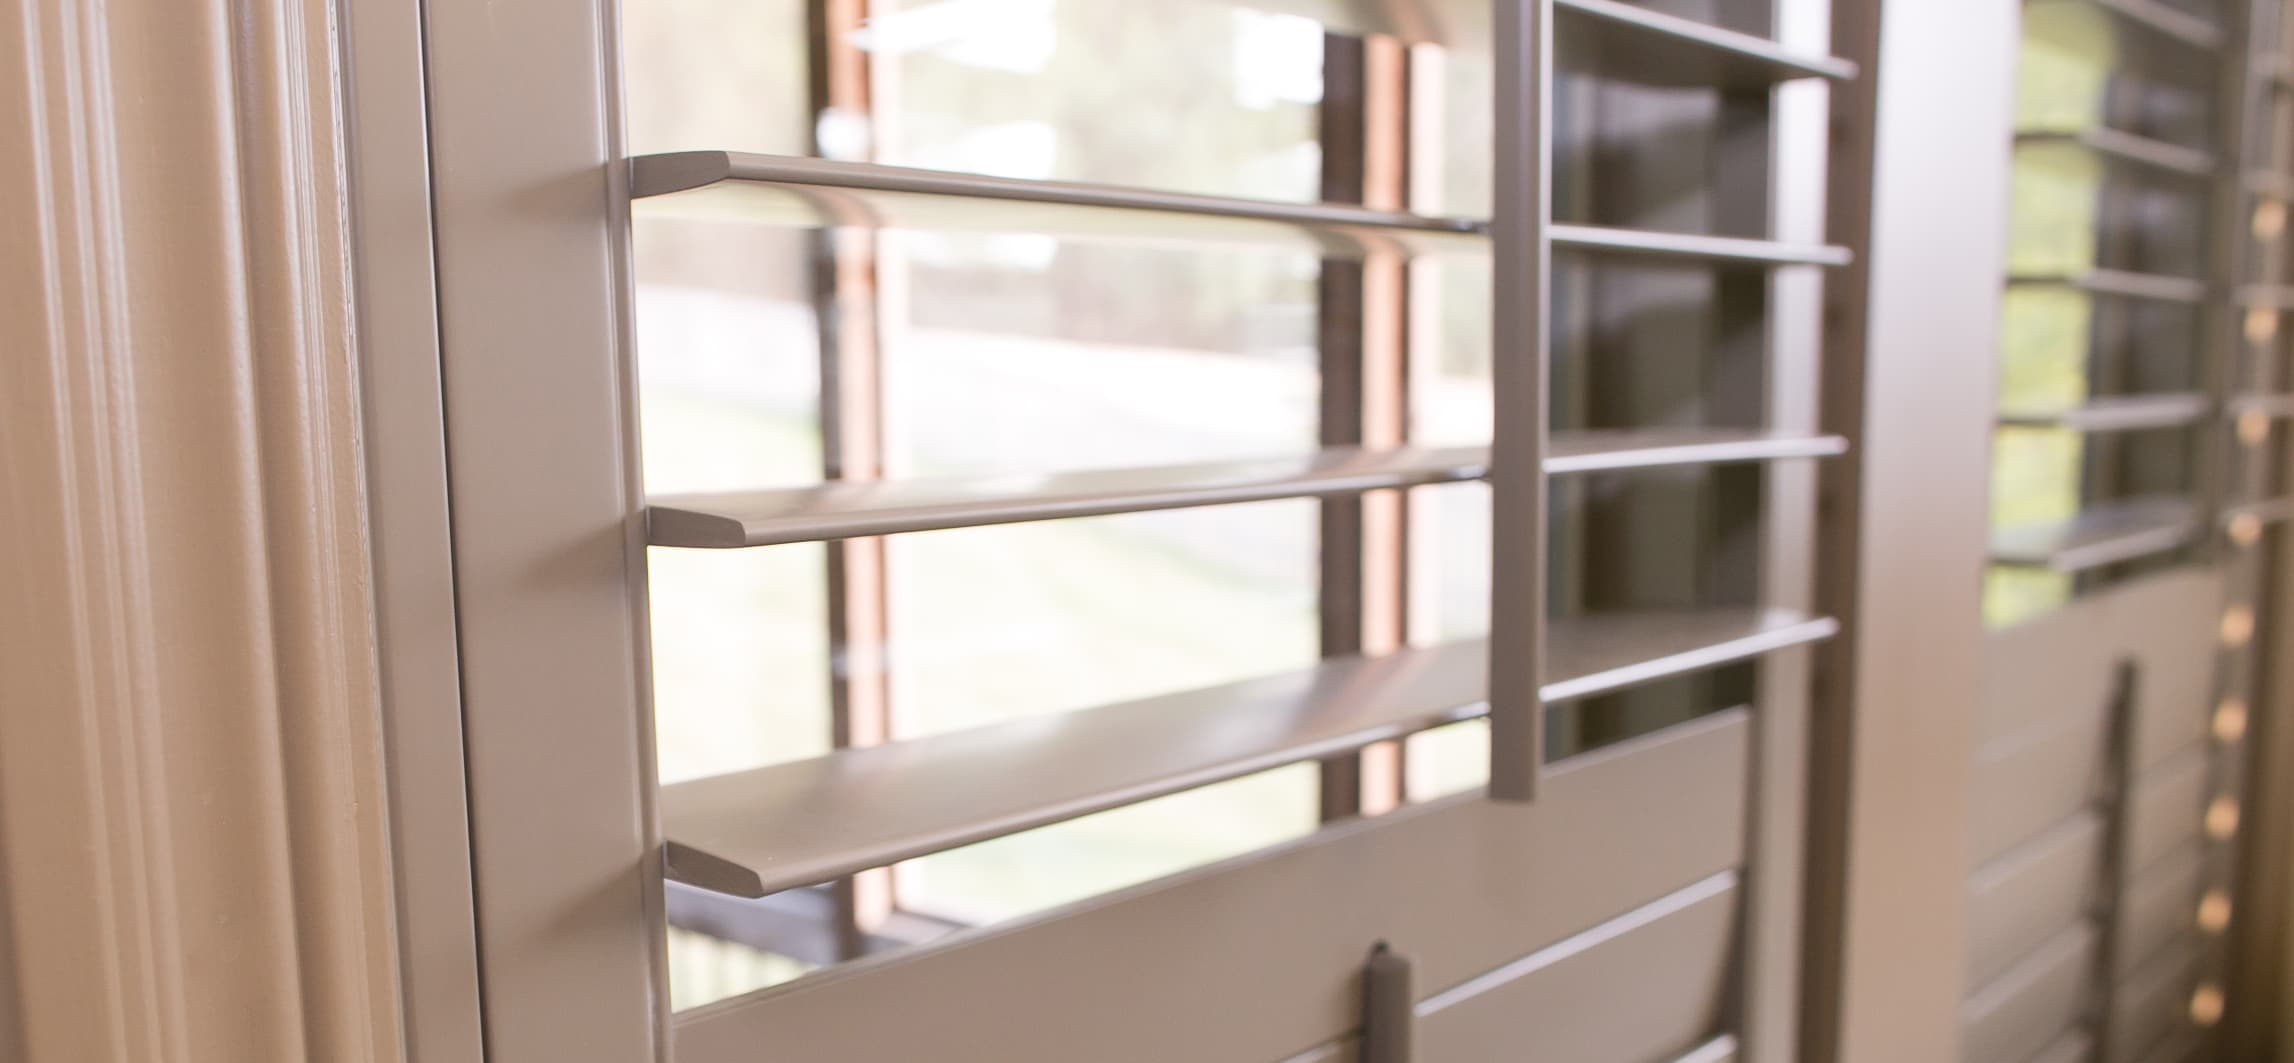 4 Decisions To Make Before Ordering Plantation Shutters